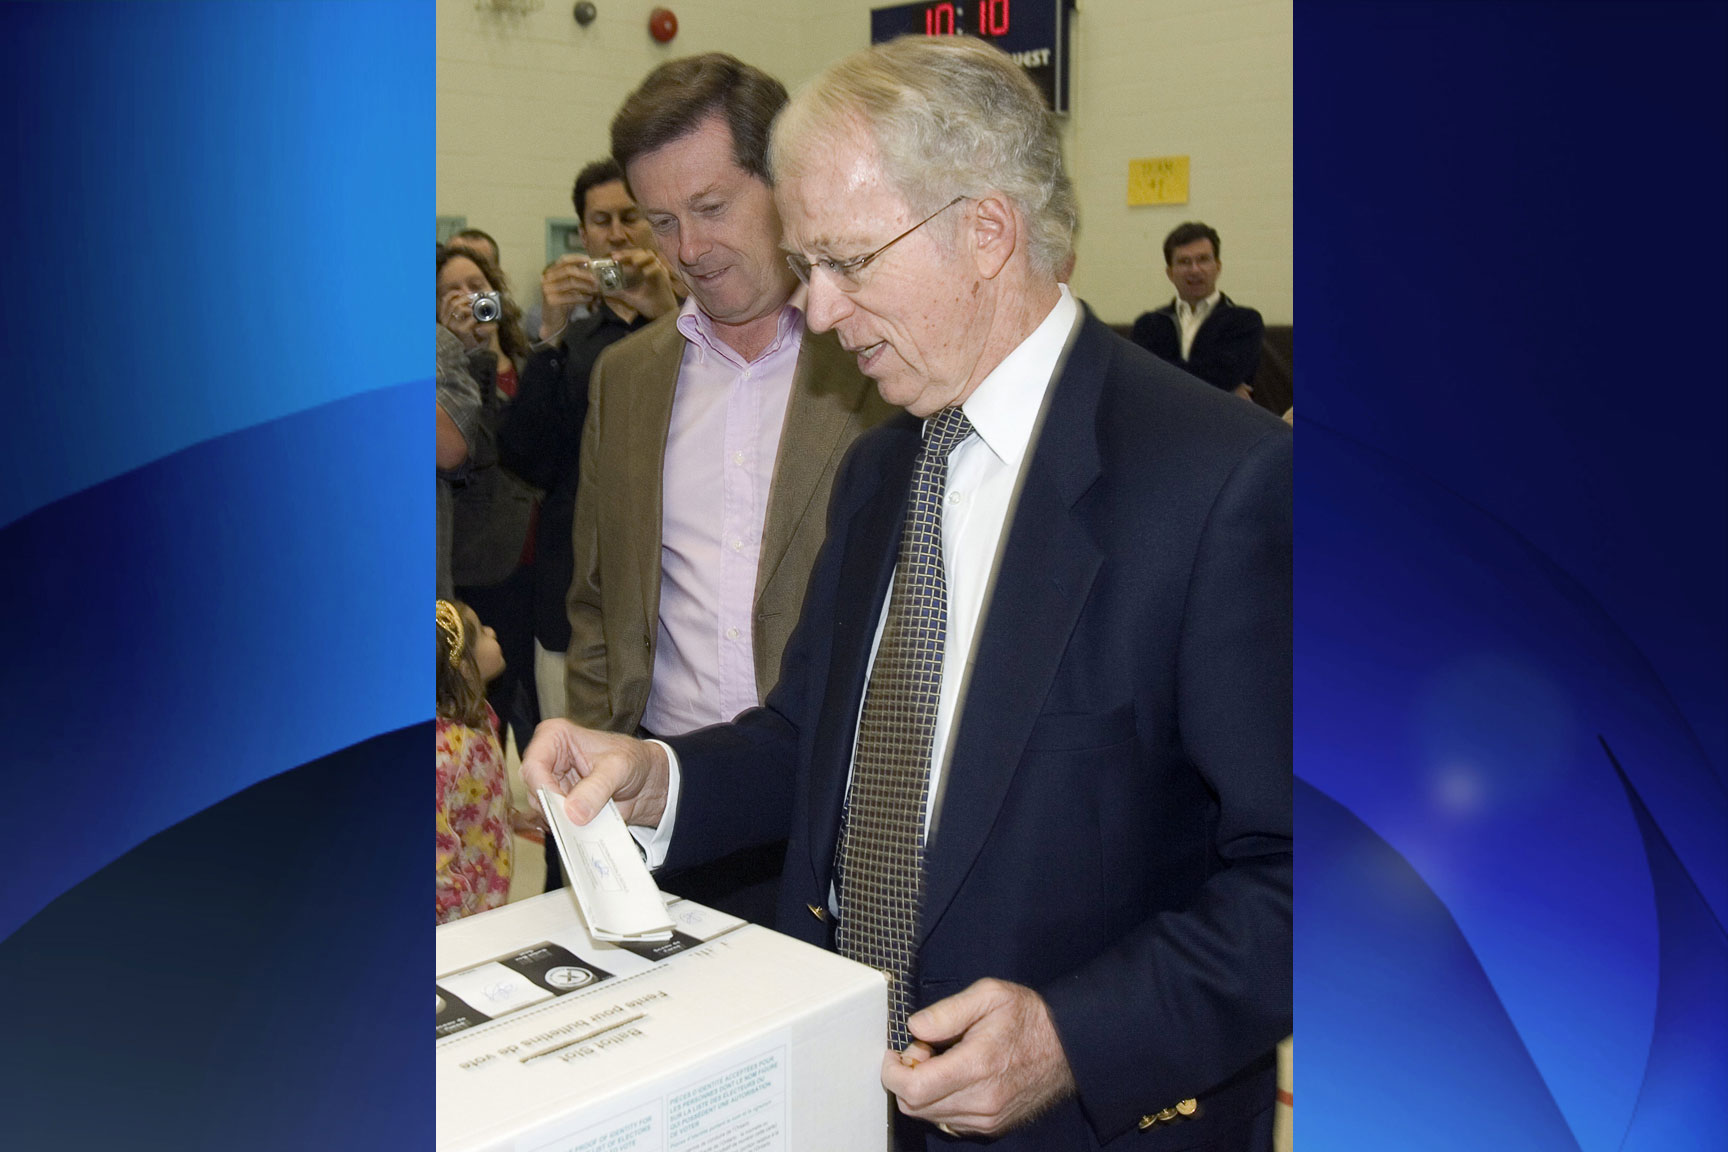 Ontario PC leader John Tory (left) watches as his father John casts his ballot at a polling station in Toronto on Oct. 10, 2007. THE CANADIAN PRESS/Frank Gunn